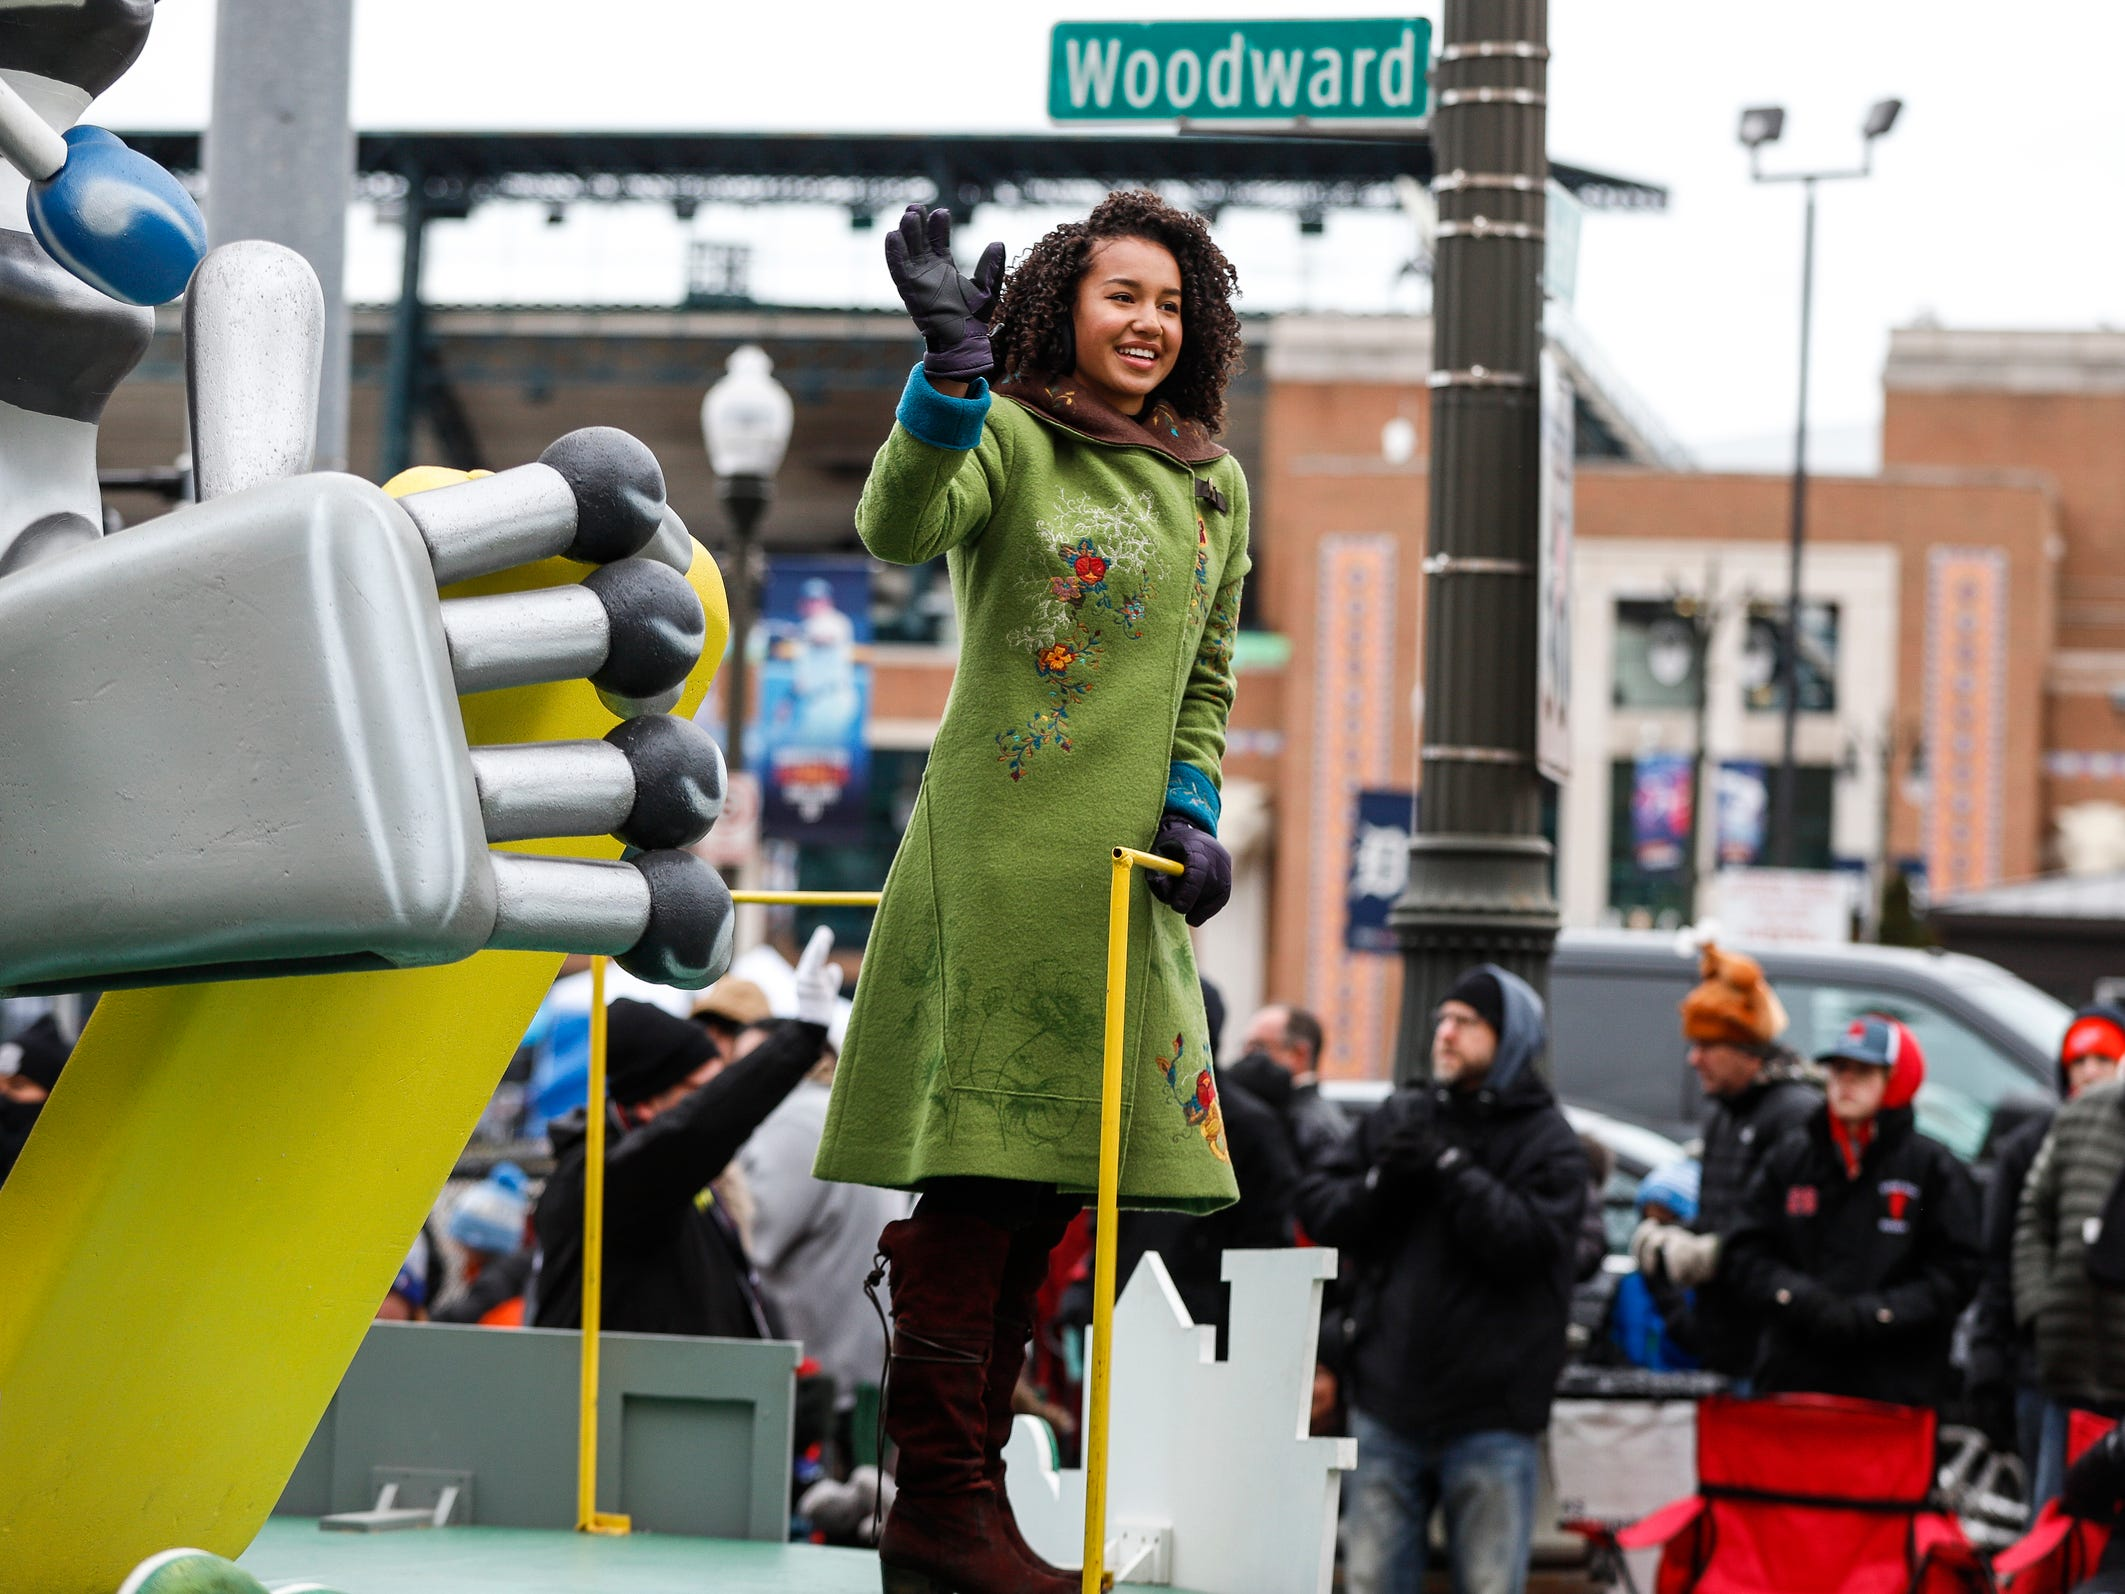 Disney Channel actress Sofia Wylie waves at the crowd during the 92nd America's Thanksgiving Day Parade in Detroit, Thursday, Nov. 22, 2018.